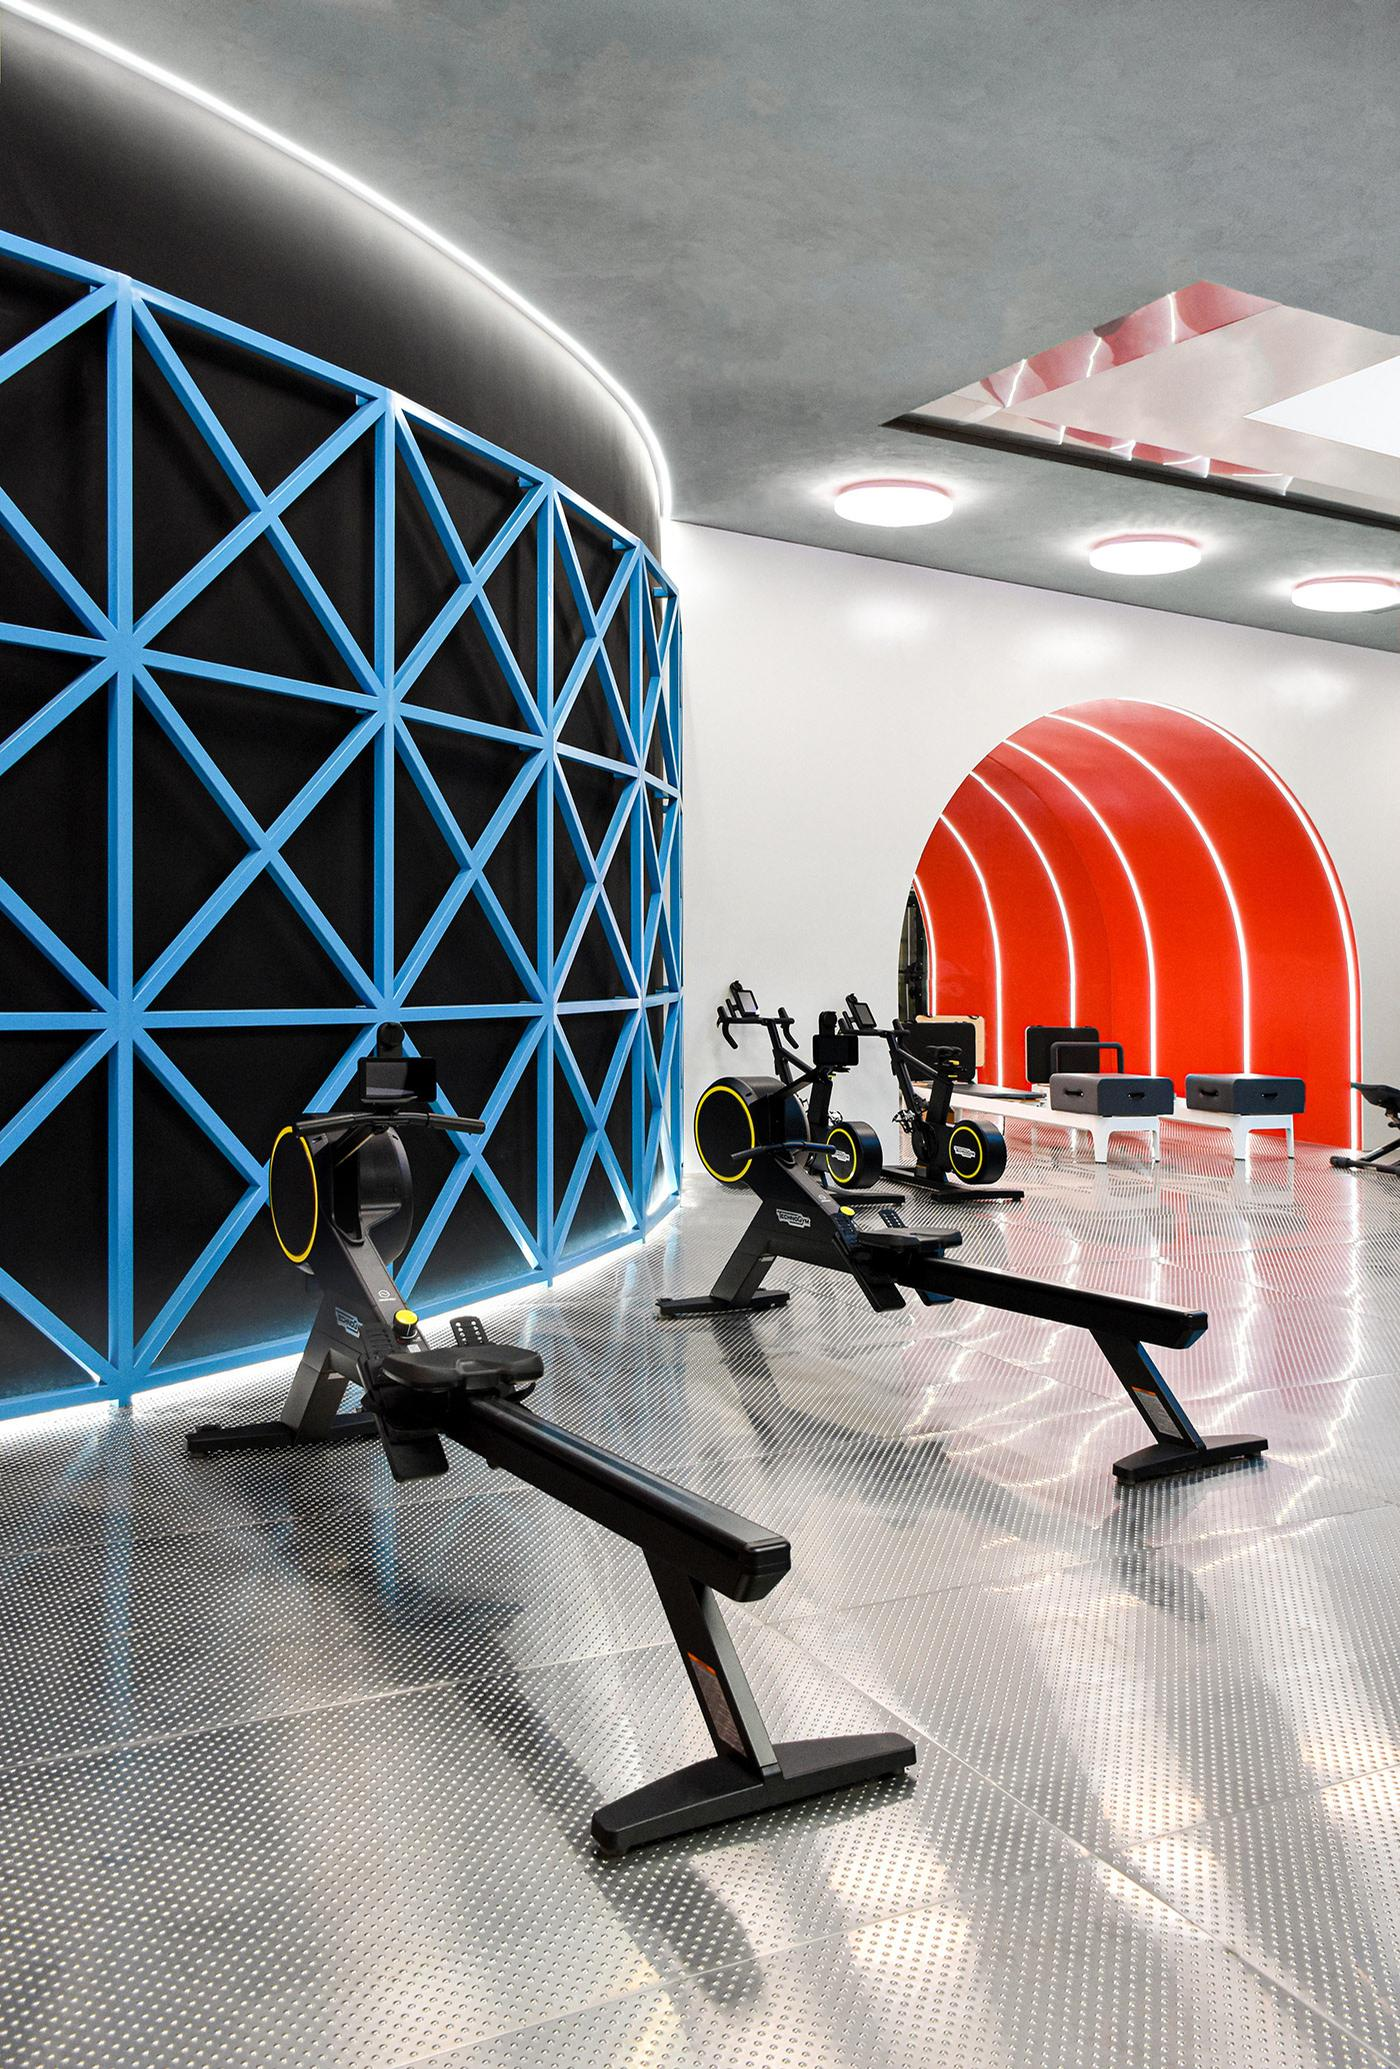 There is a conventional training area with Technogym equipment